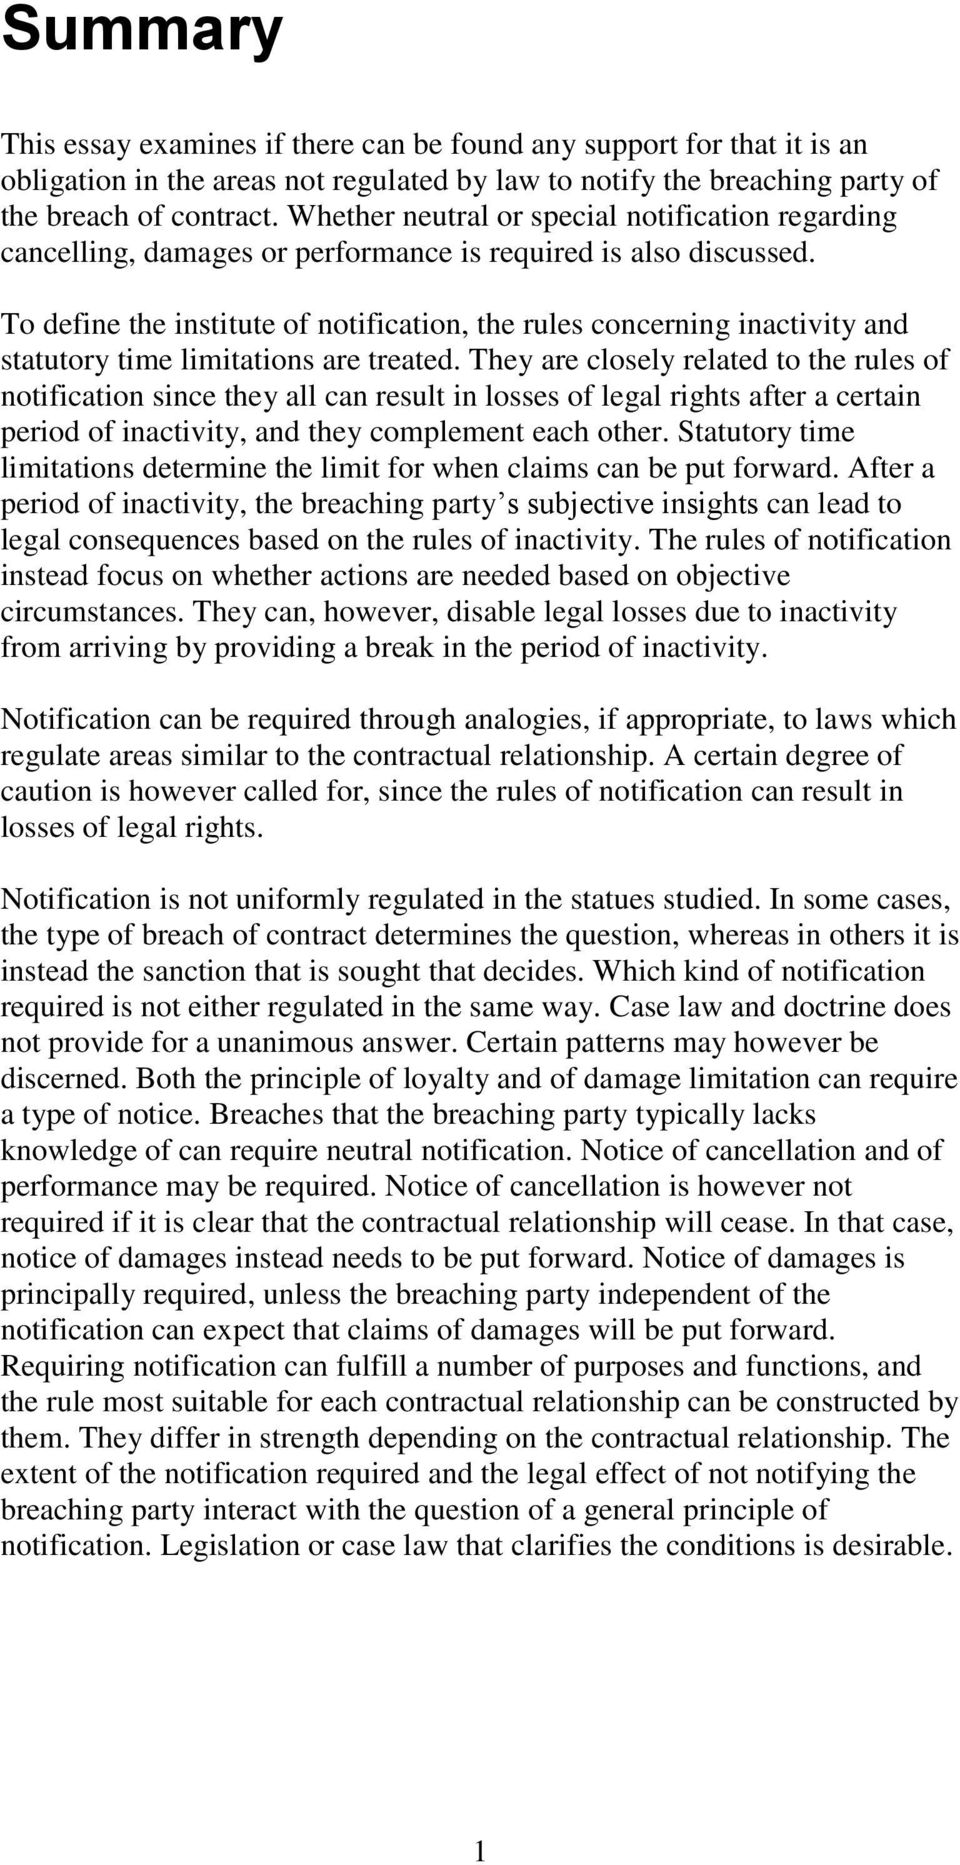 To define the institute of notification, the rules concerning inactivity and statutory time limitations are treated.